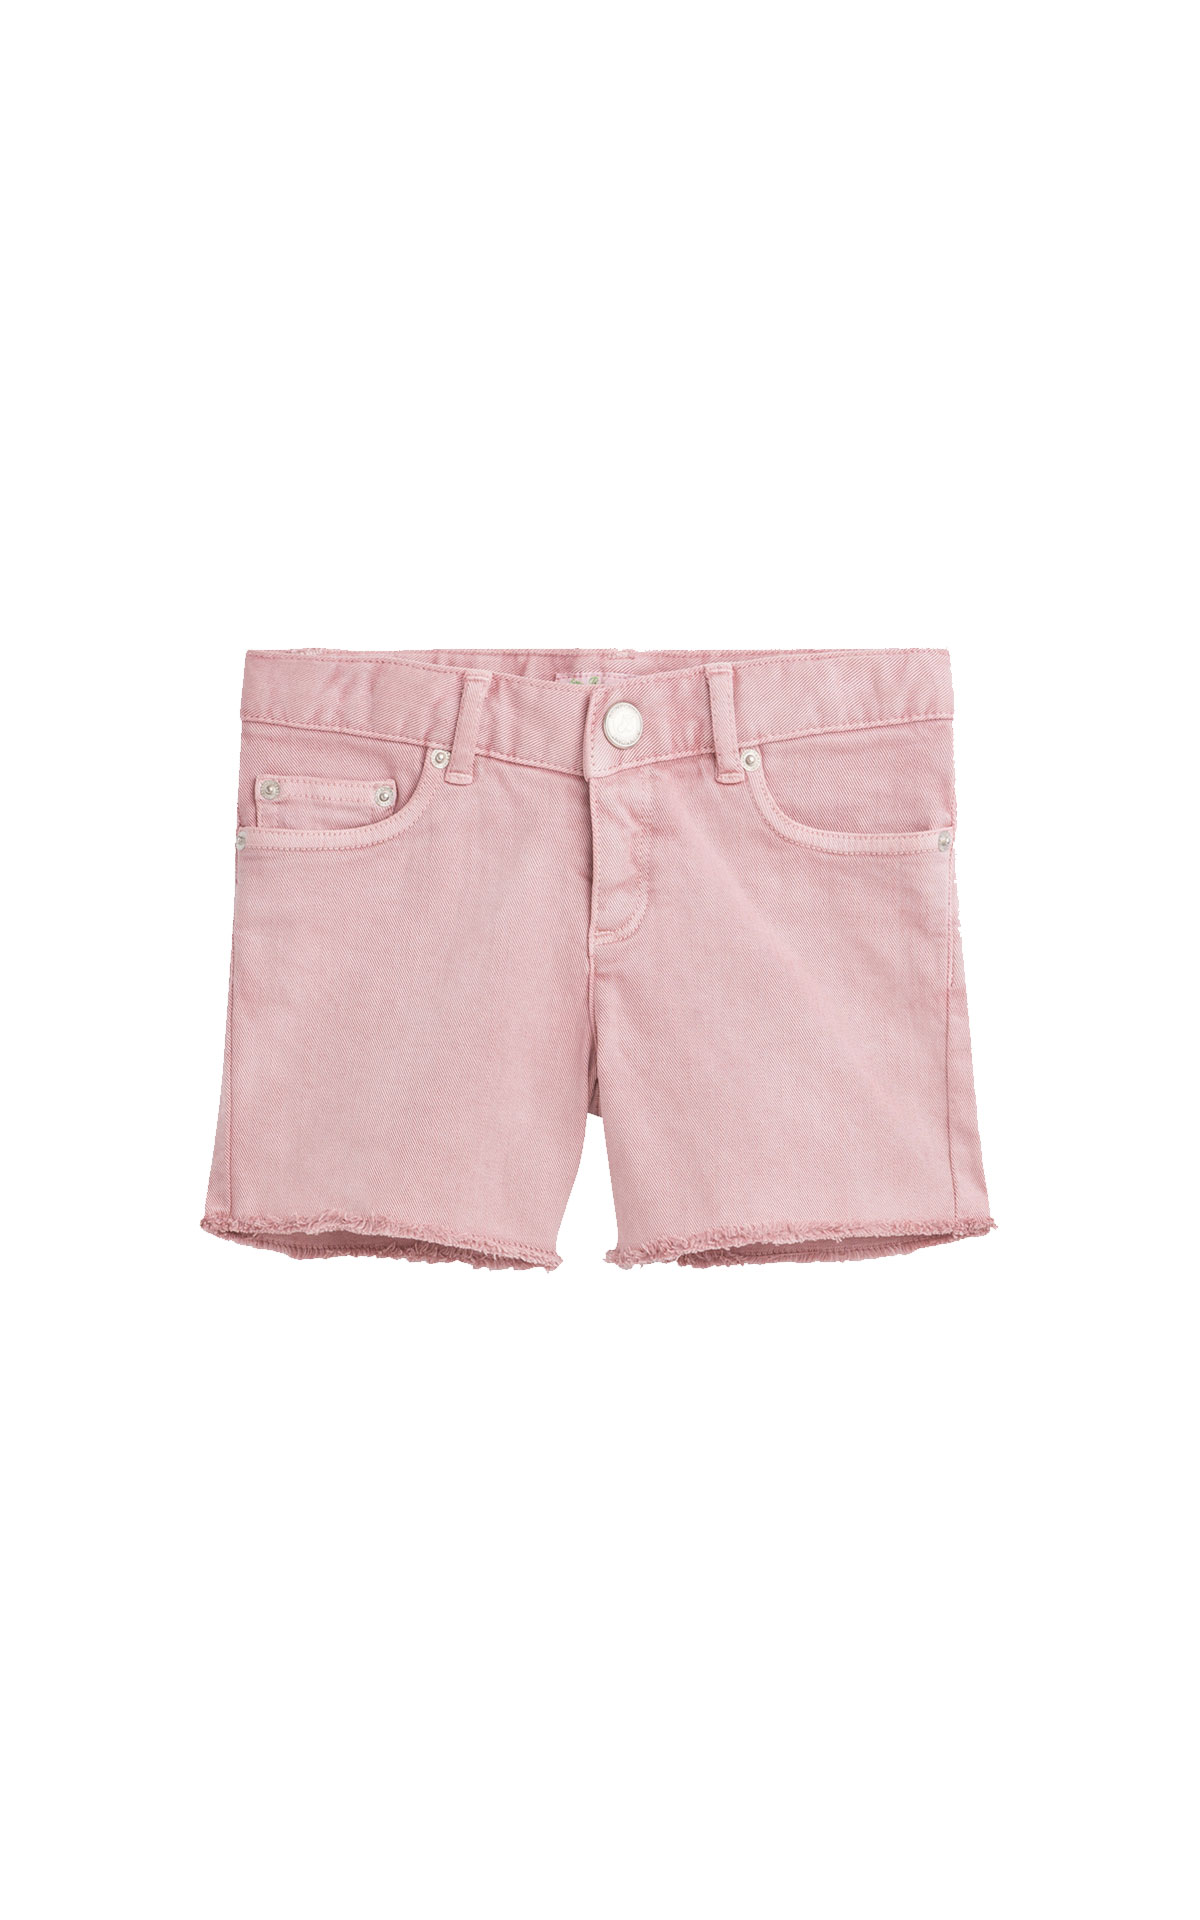 Bonpoint Pink shorts from Bicester Village